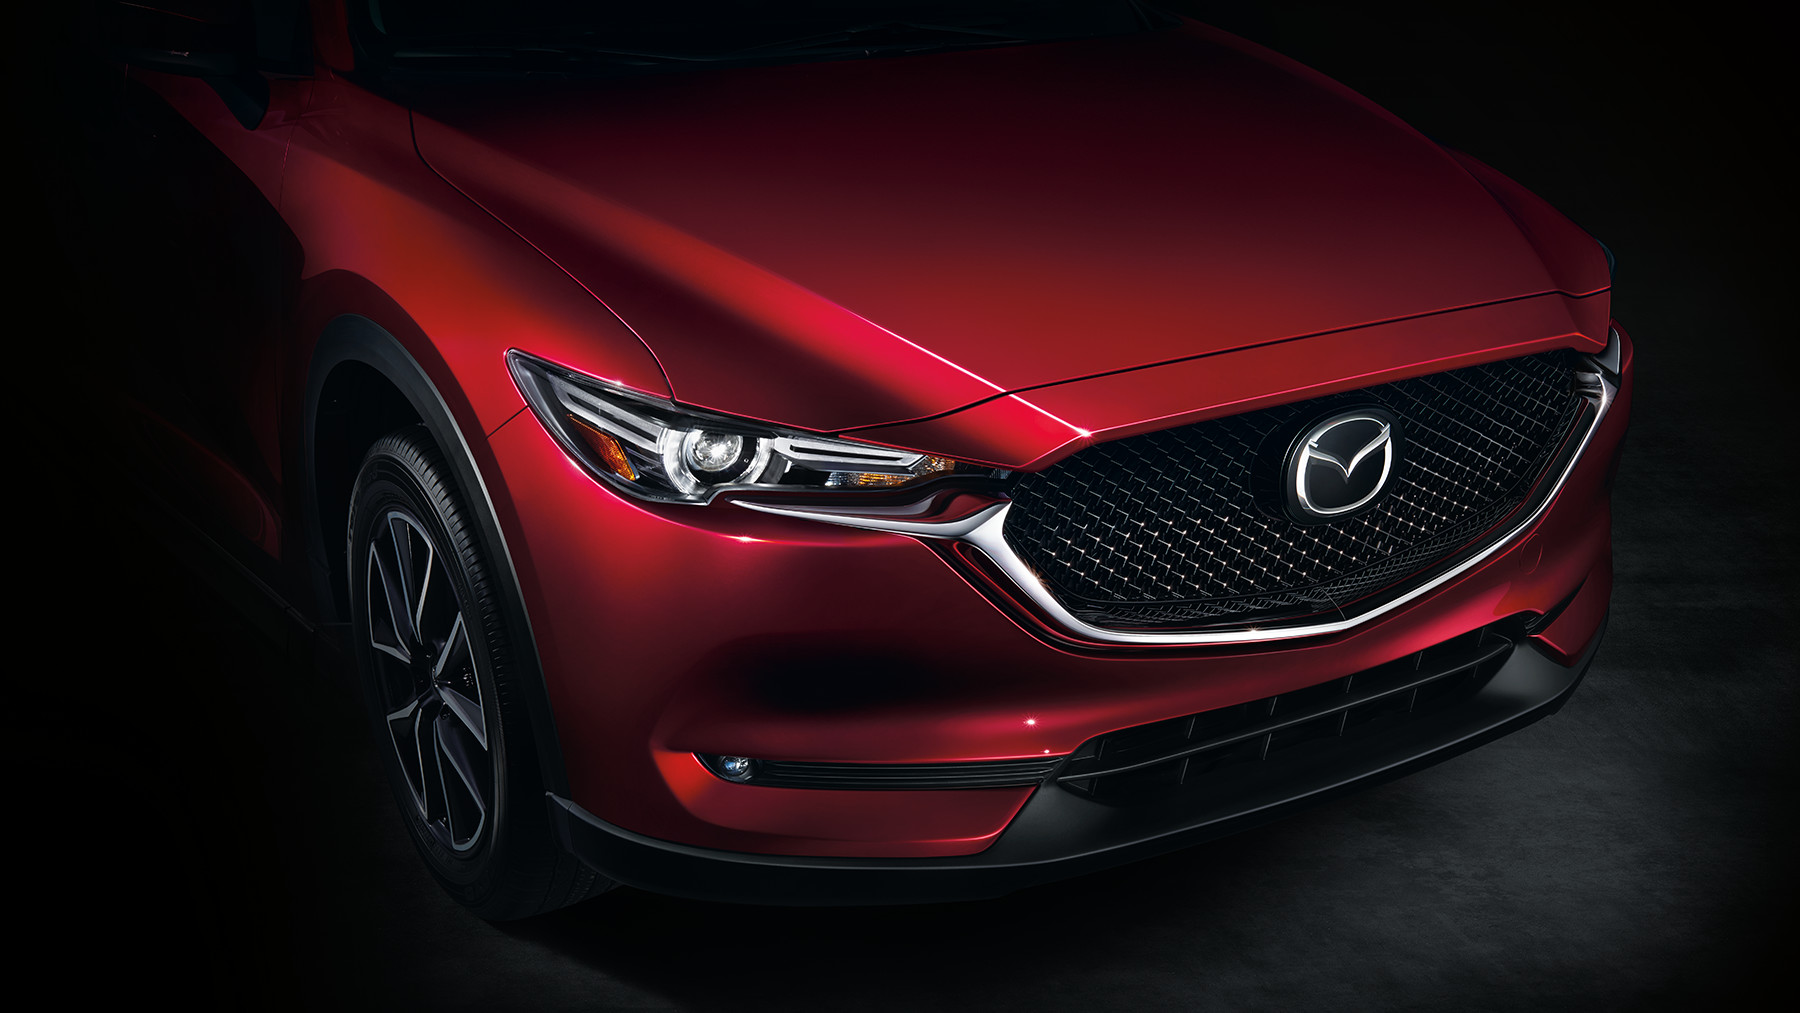 New Mazda CX-5 interior view